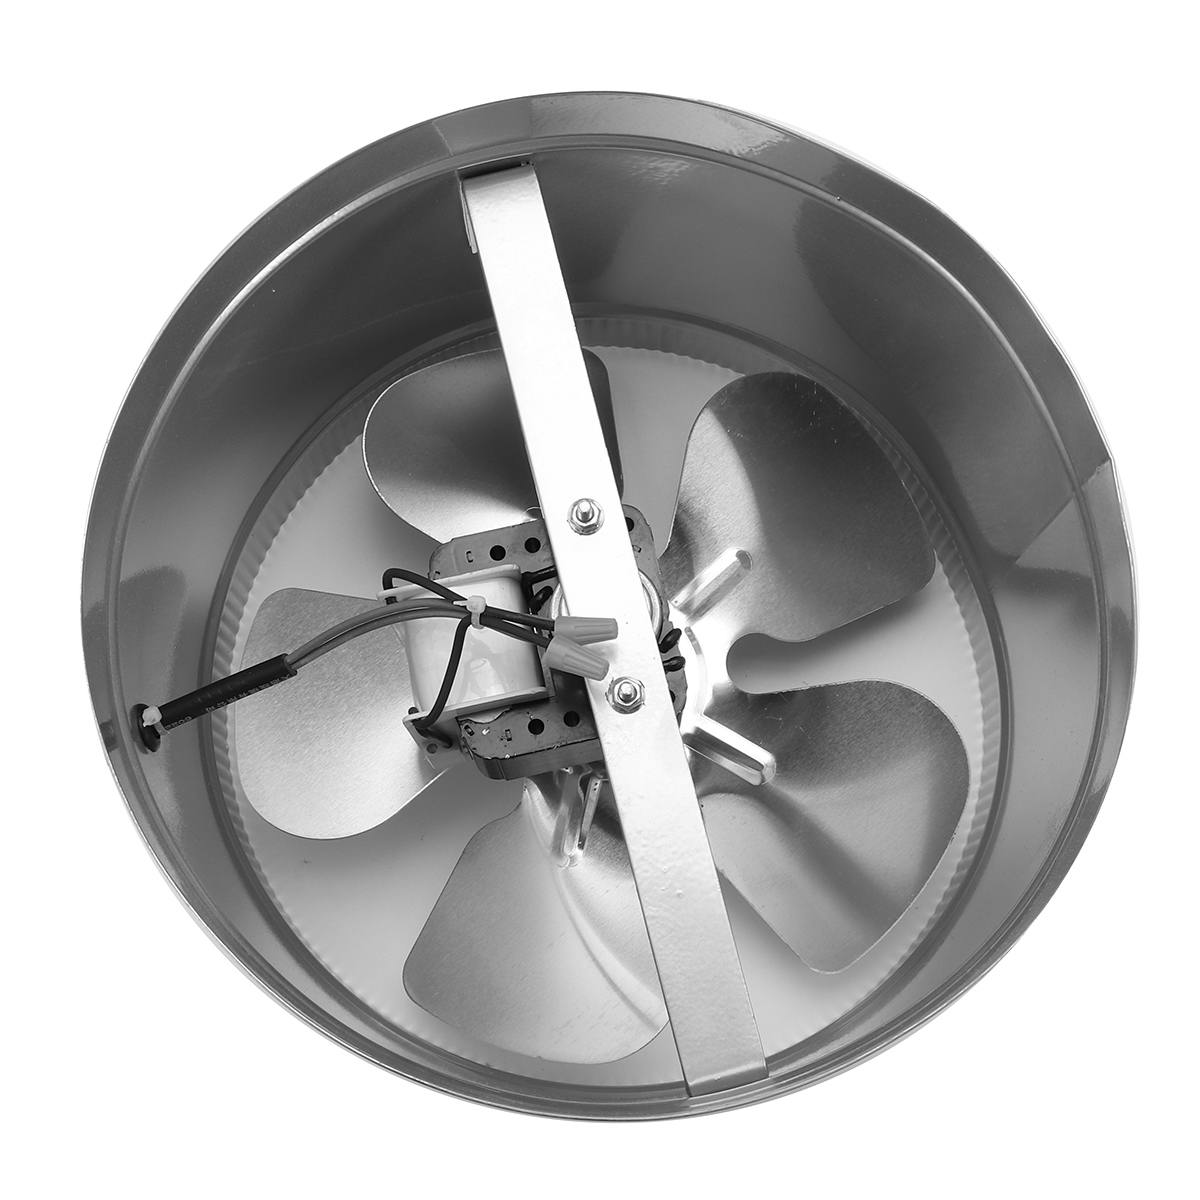 Hot 4/6/8/10 Inch Inline Air Ducting Fan Ventilator Metal Booster Fan Blower Intake Out-Take Ventilation Vents For Kitchen Bathr